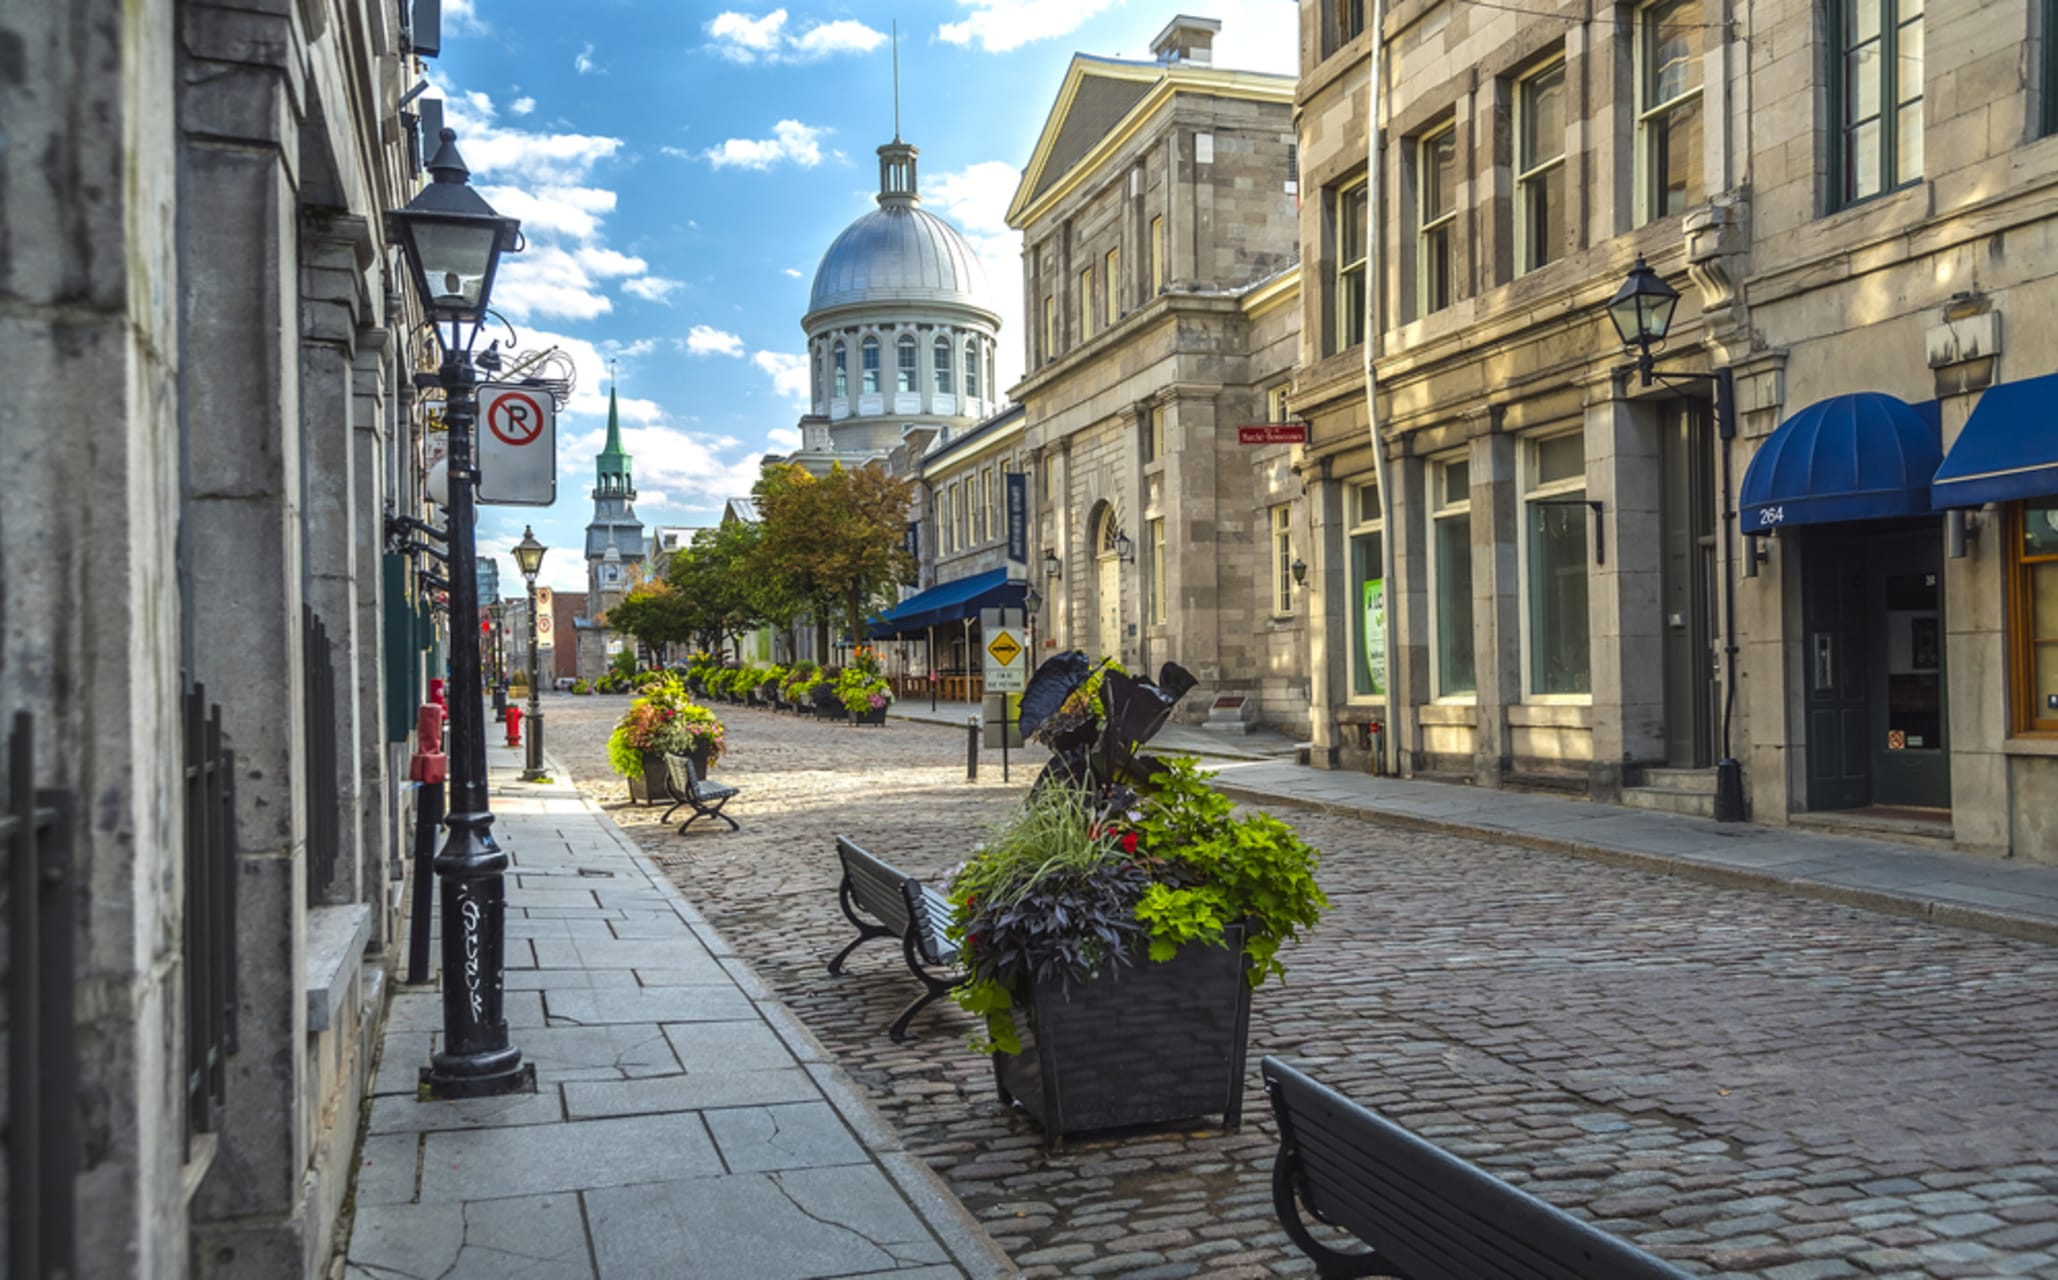 Montreal - Old Montreal: History and Architecture